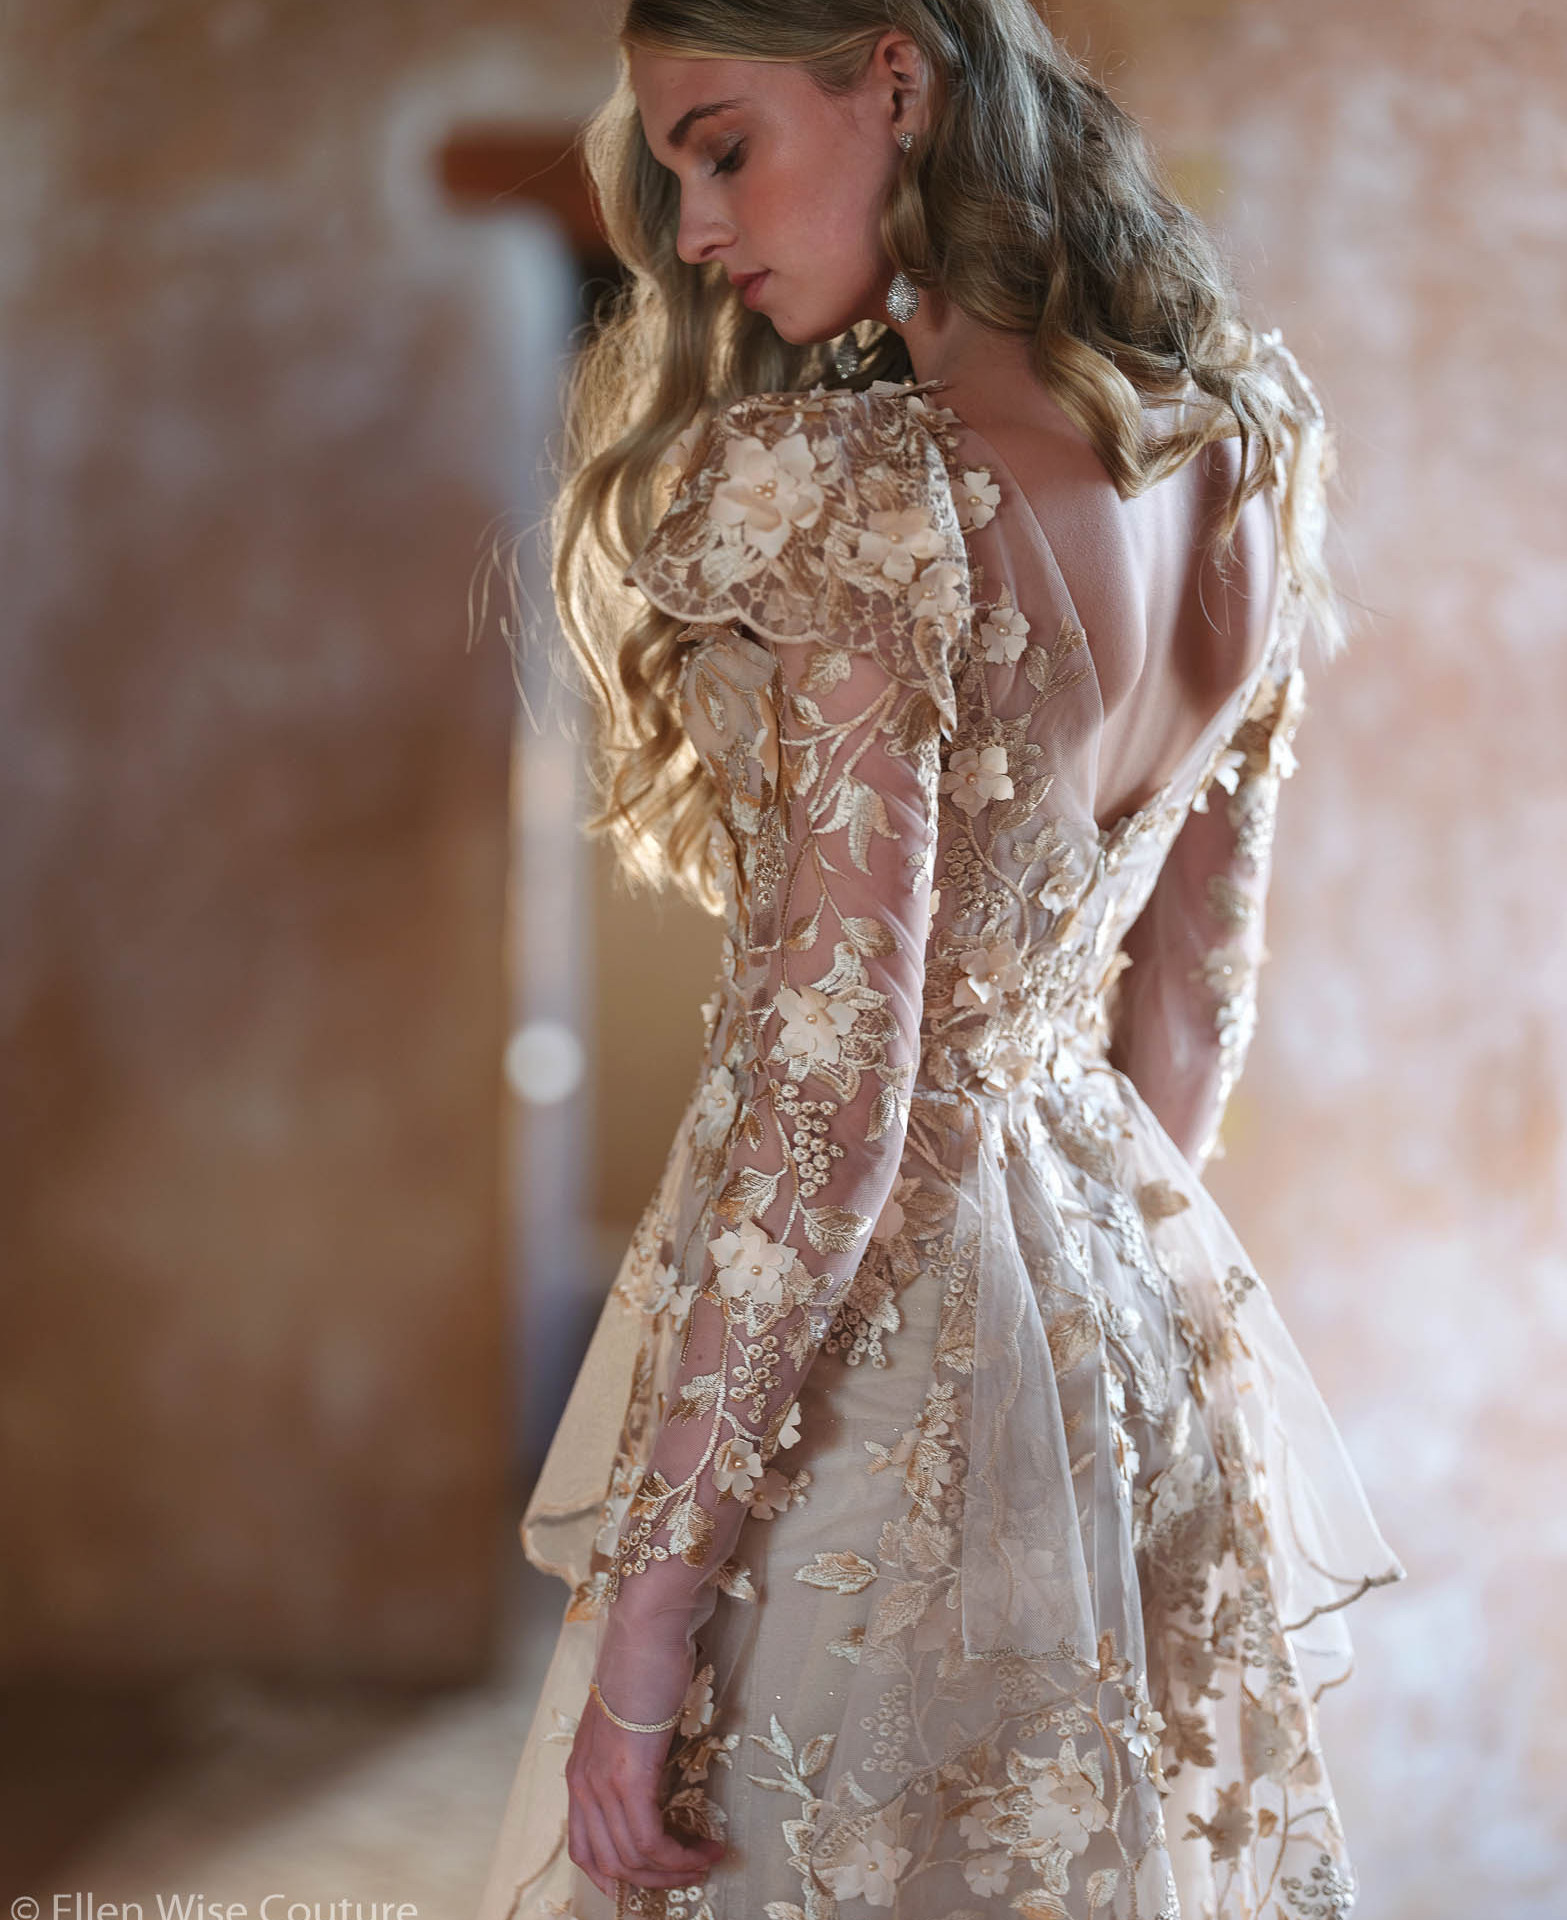 Allegra Wedding Dress by Ellen Wise Couture